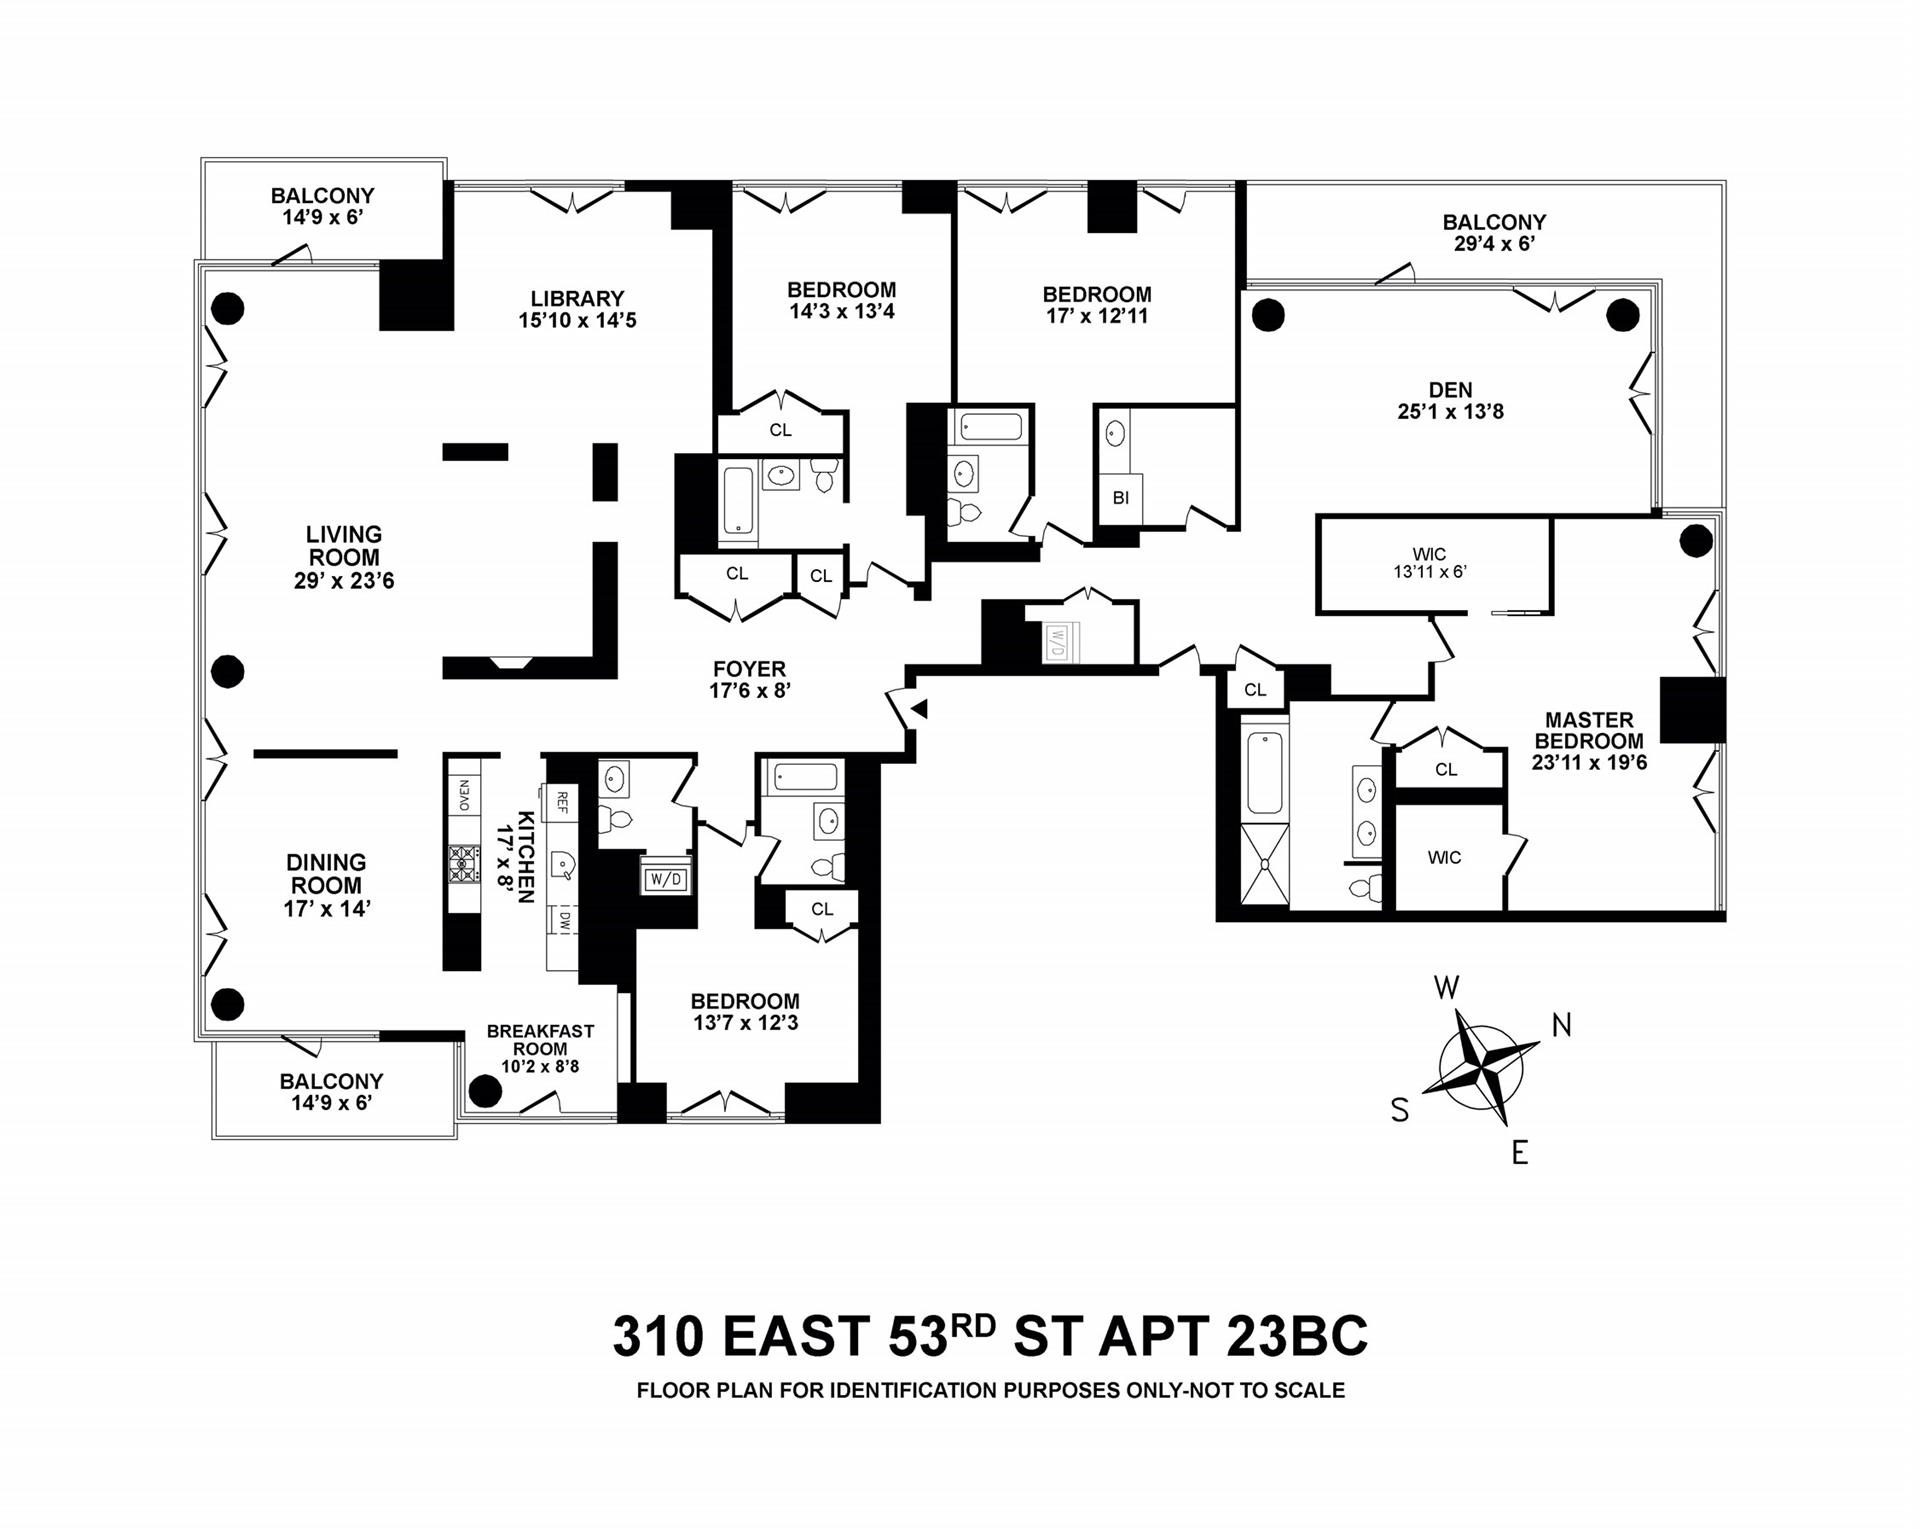 Floor plan of The Three Ten, 310 East 53rd St, 23BC - Sutton Area, New York